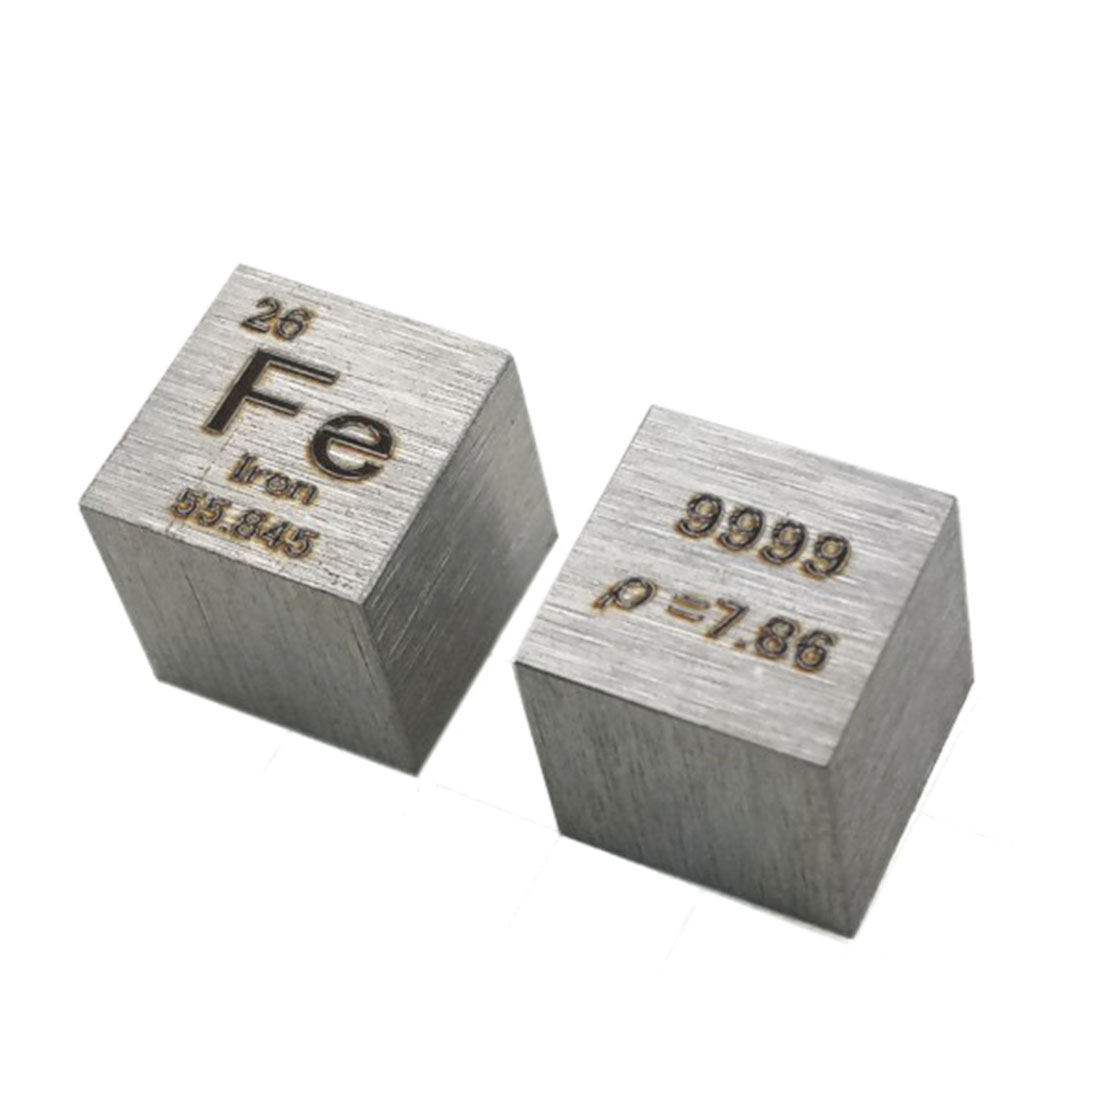 10 X 10 X 10mm (Fe≥99.9%) Wiredrawing High Purity 4N Ferrum Cube Periodic Table Of Elements Cube Fe Hand Made DIY Crafts Display